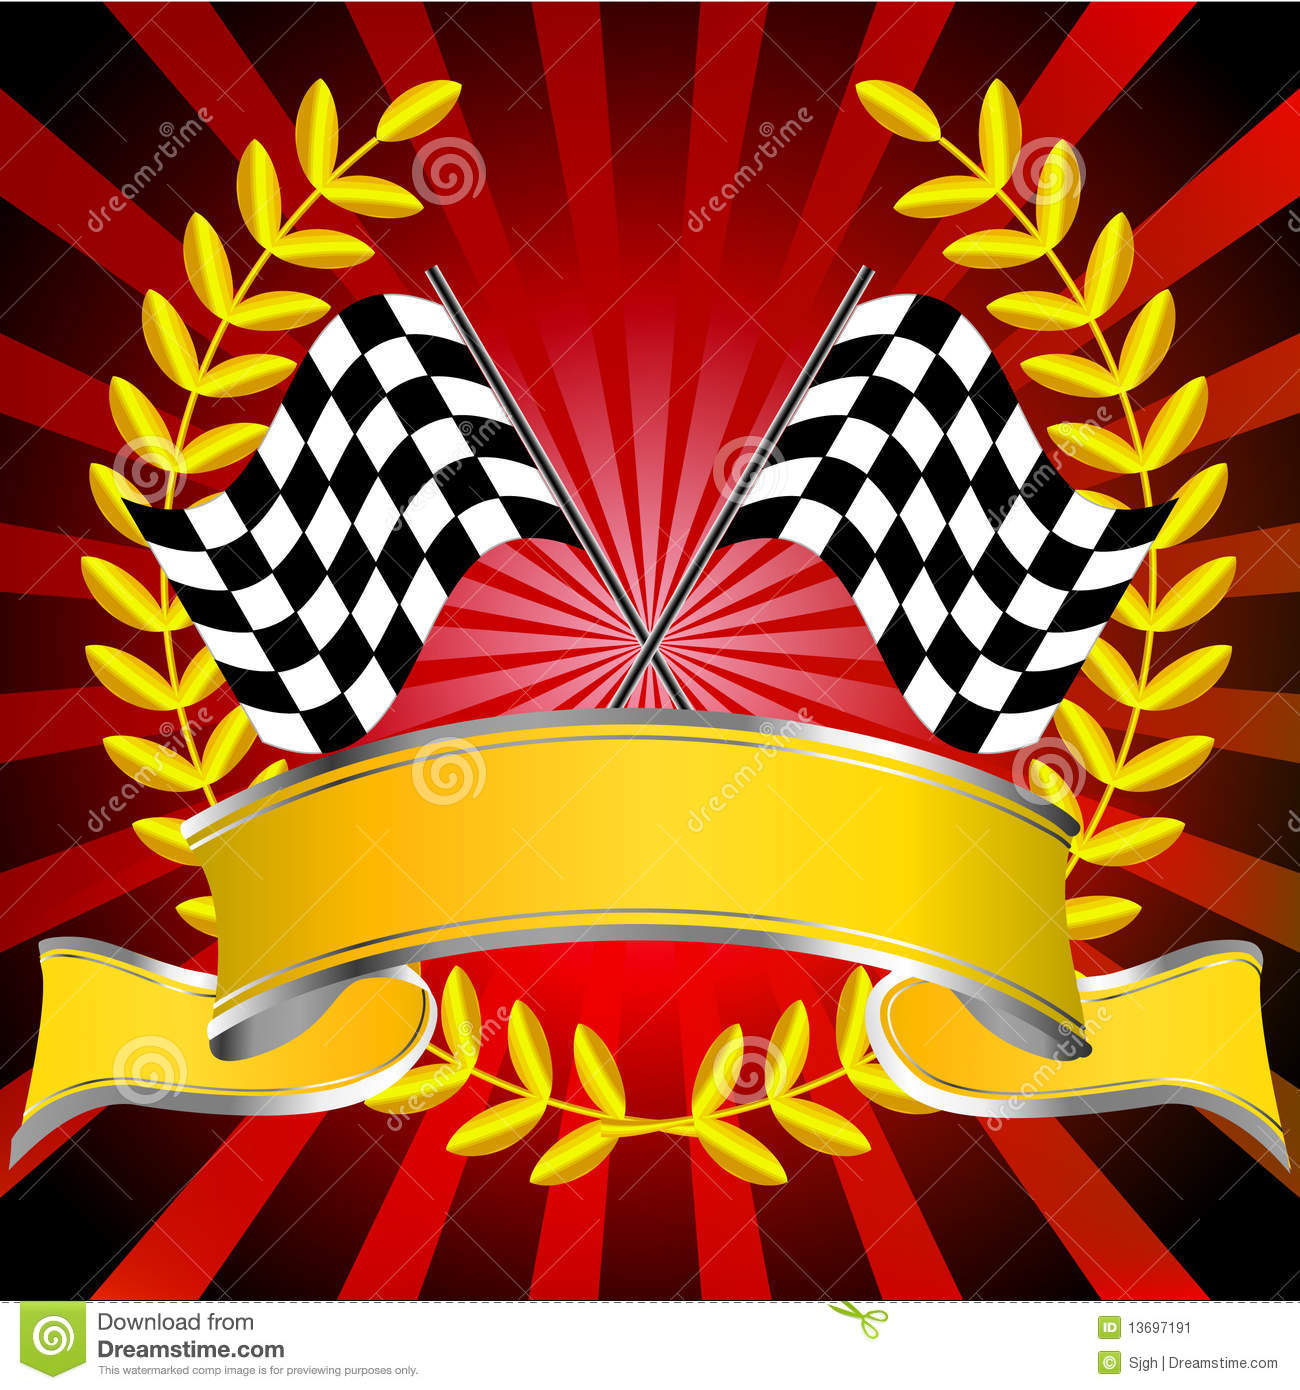 Racing Flags In Red With Wreath And Banner Stock Image ...